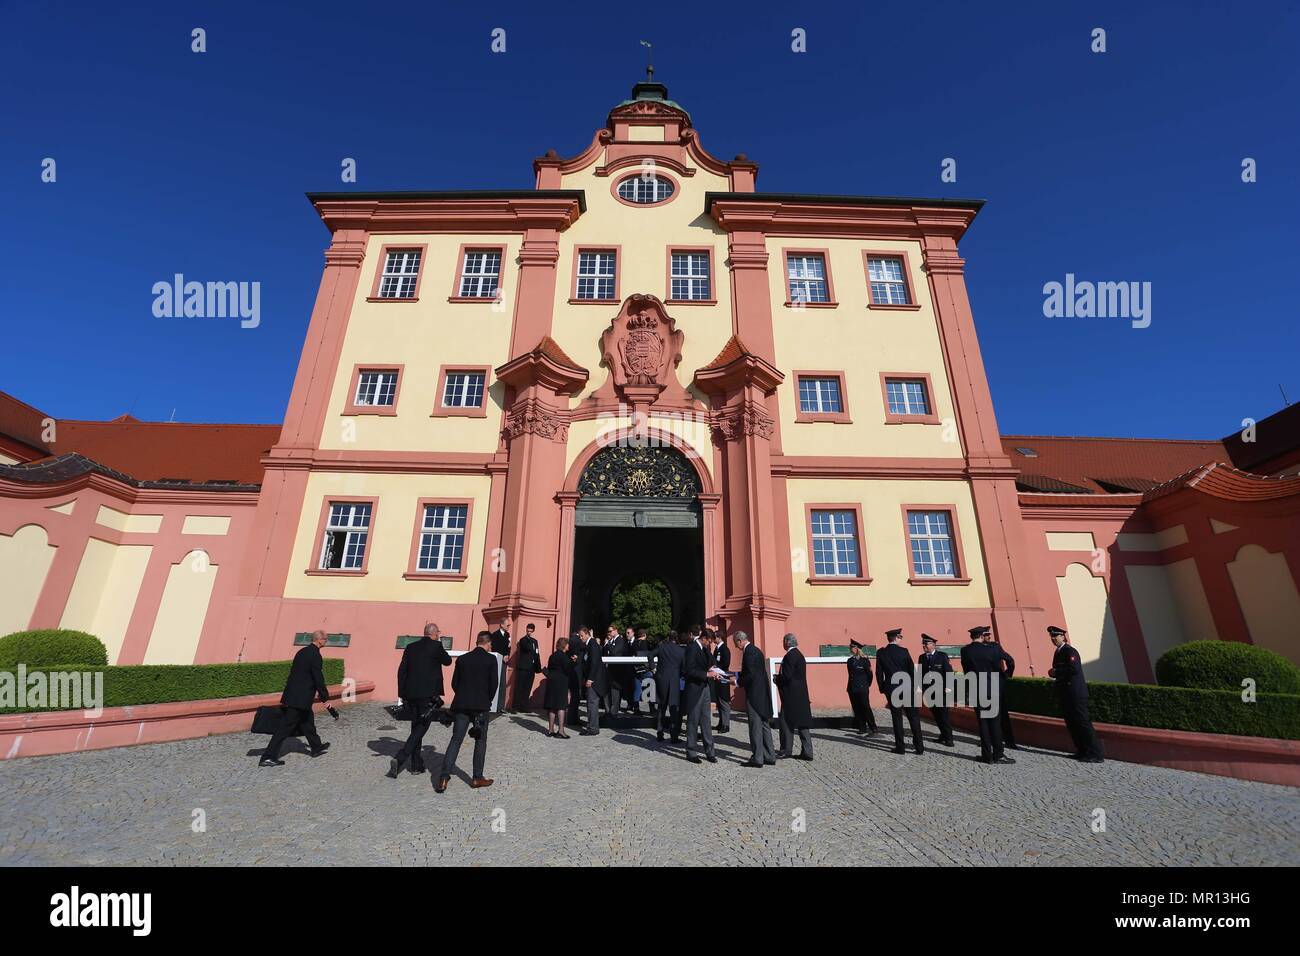 25 May 2018, Germany, Altshausen: Funeral guests arrive at the palace. Photo: Karl-Josef Hildenbrand/dpa Credit: dpa picture alliance/Alamy Live News - Stock Image